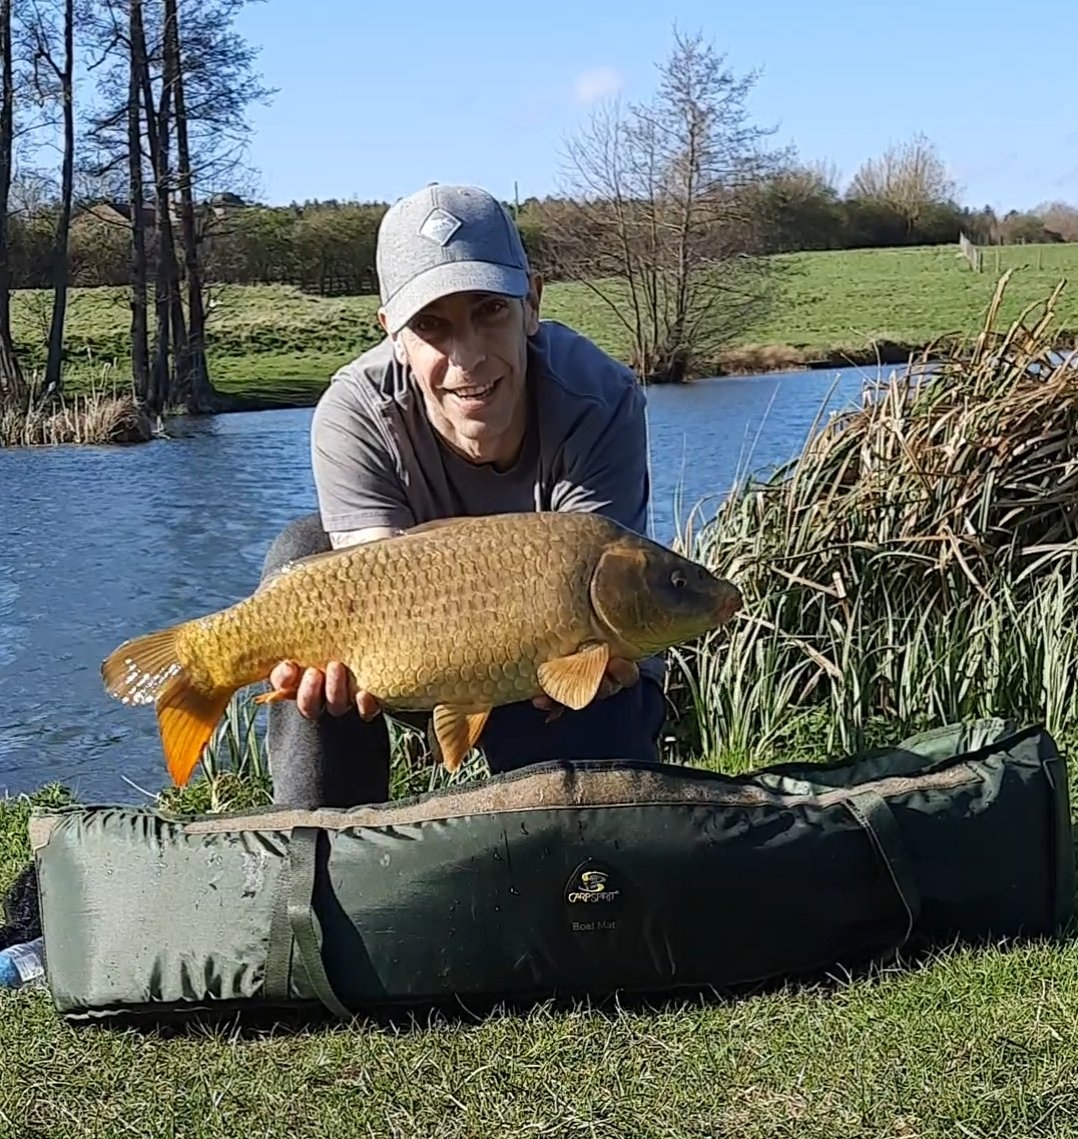 best one out of #lynnpoolfishery so far for me,had a few week back <b>🎣</b>📸#carpfishing #fish